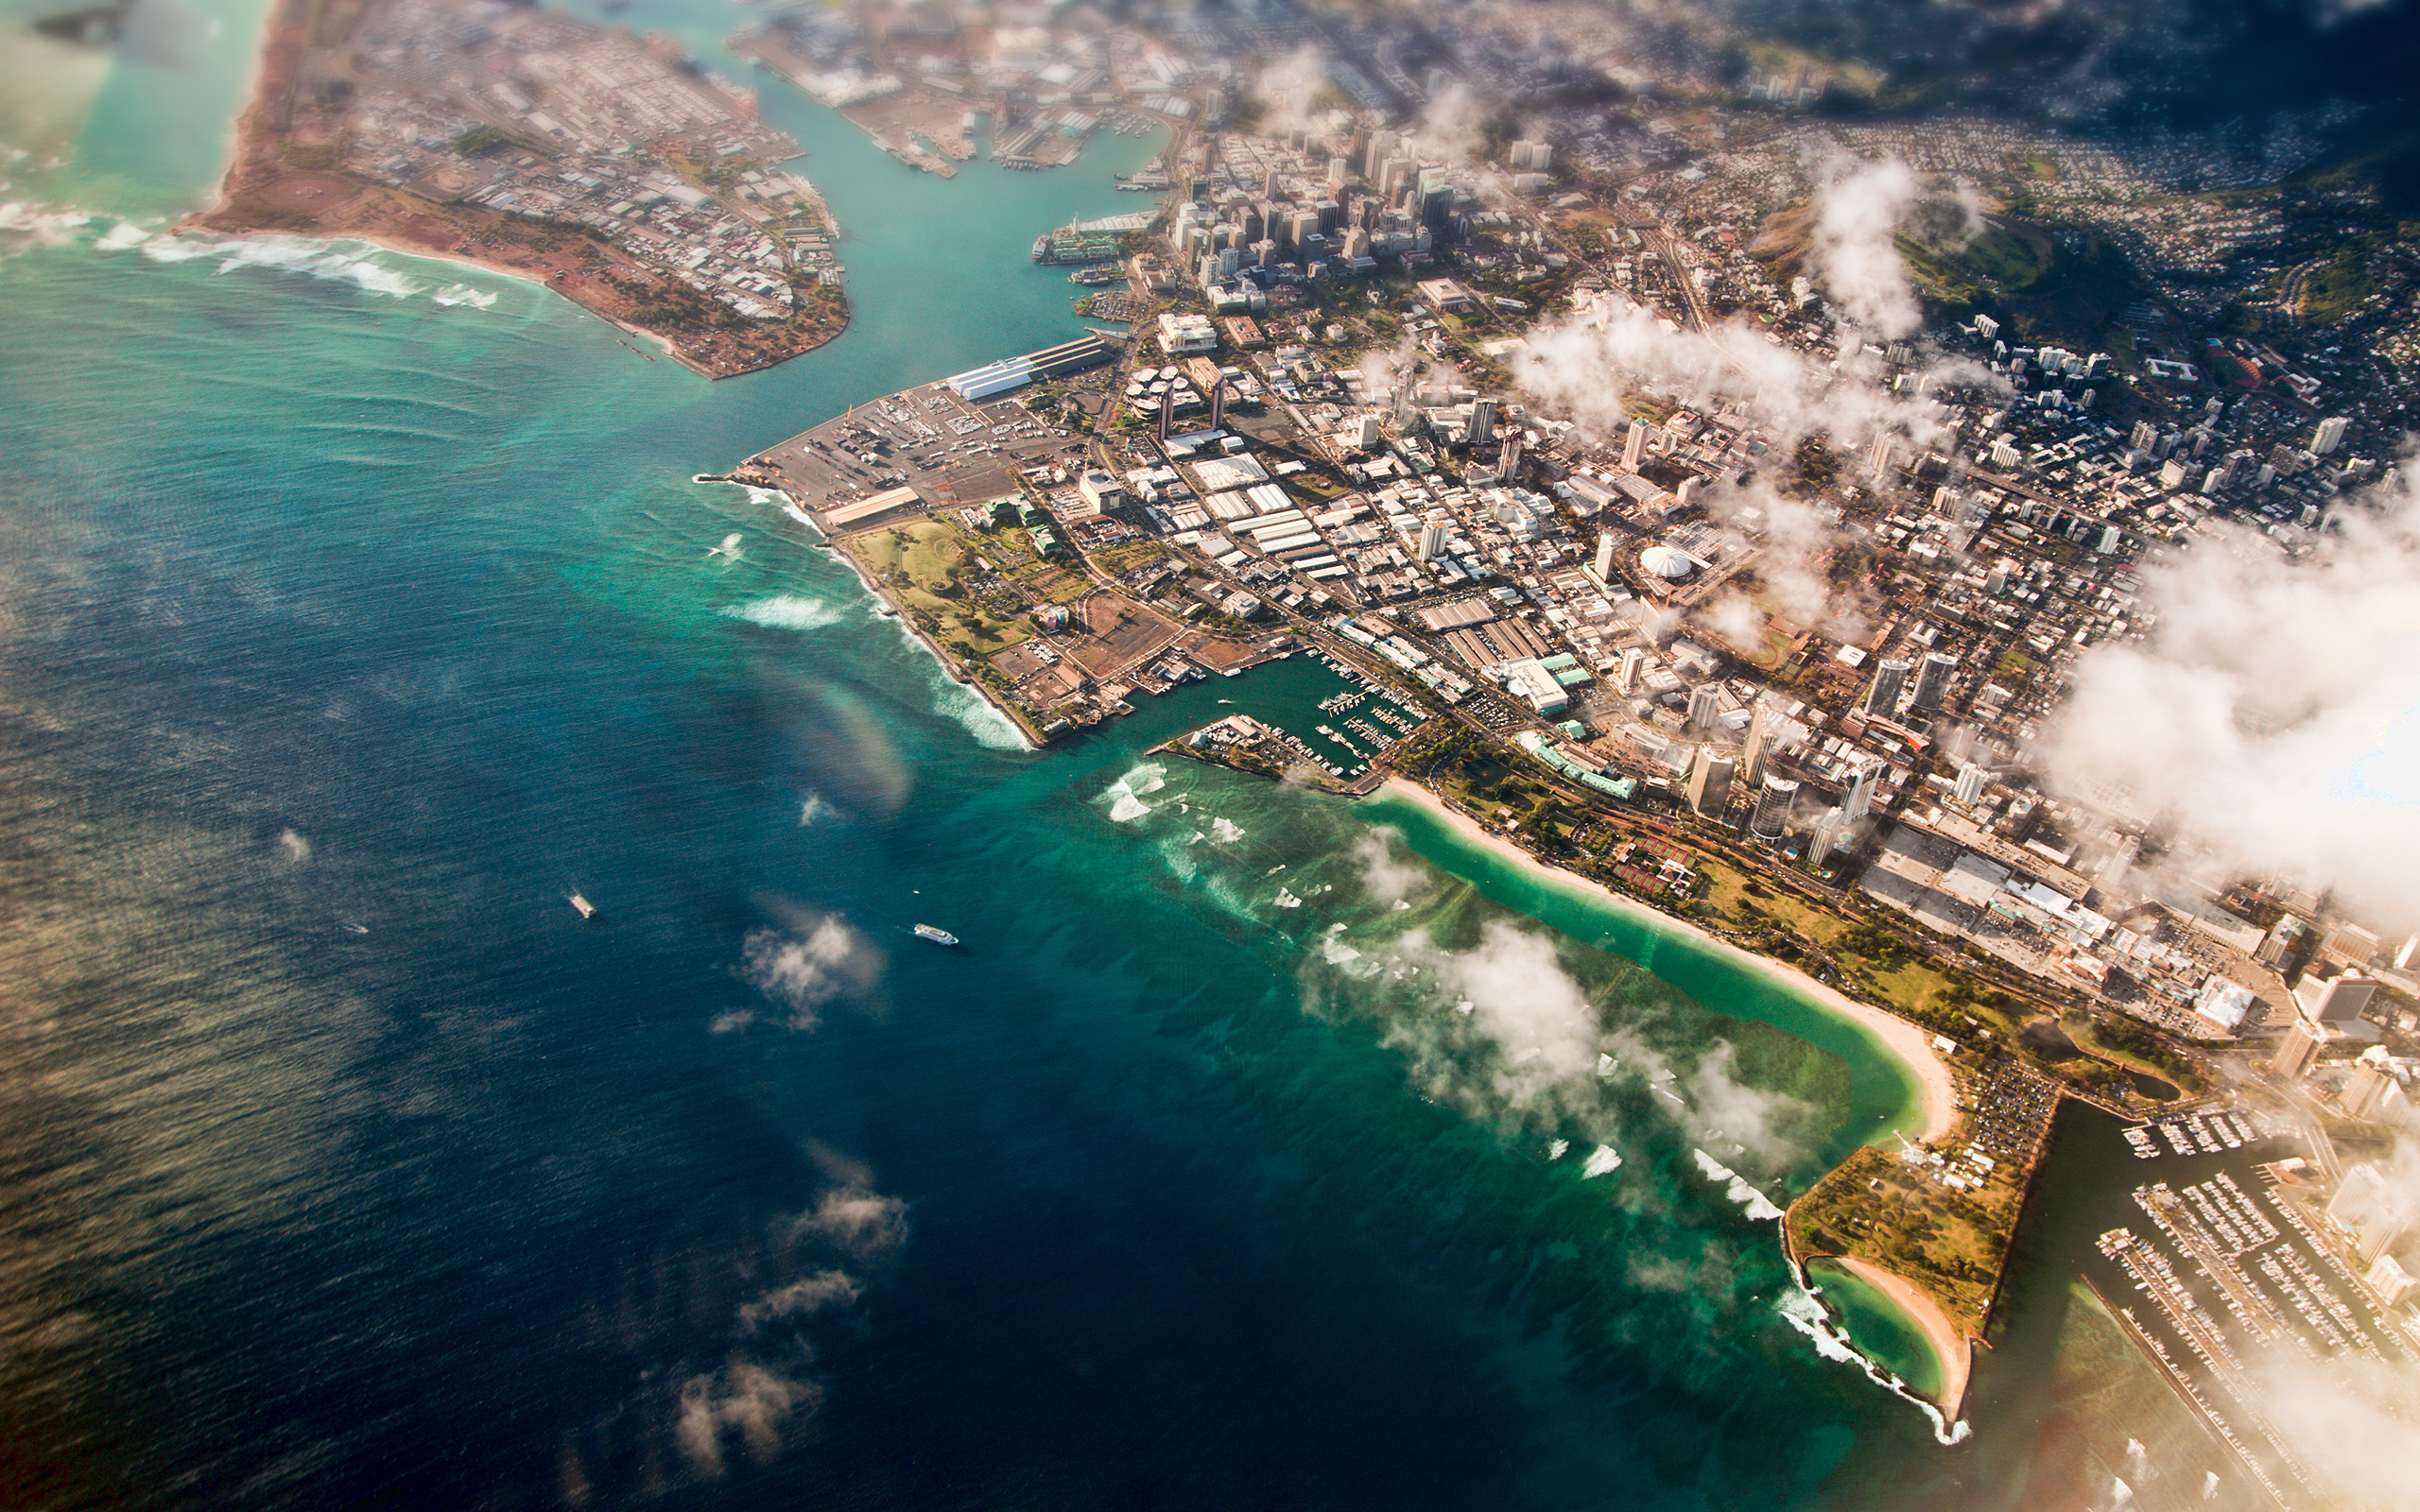 Bing Animated Wallpaper Aerial View Of Honolulu Hawaii Wallpapers Aerial View Of